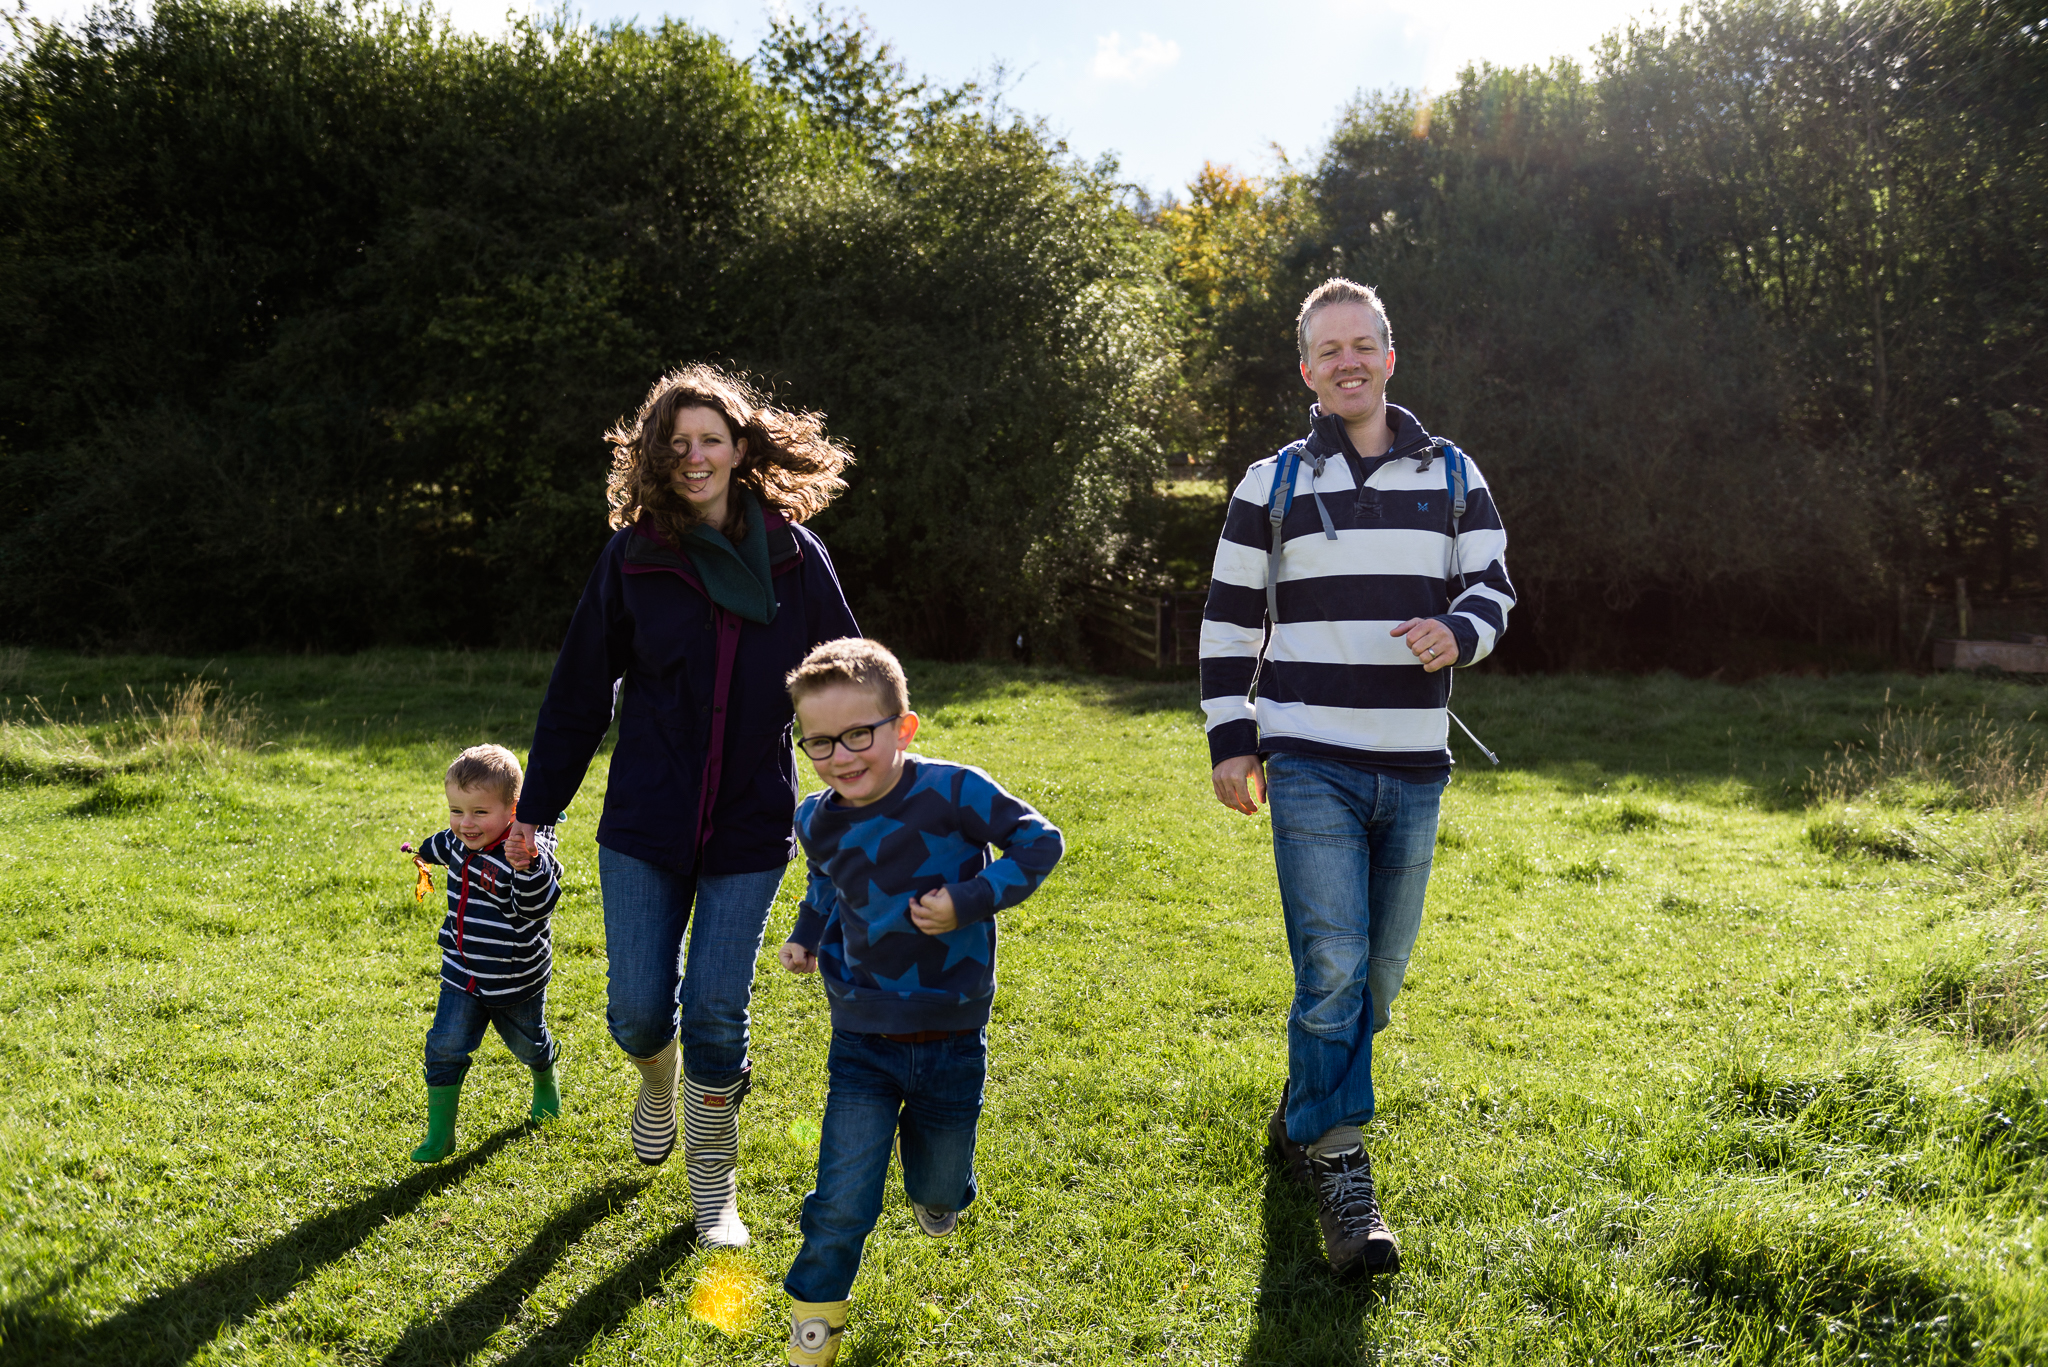 Documentary Family Photography at Clent Hills, Worcestershire Family Lifestyle Photography Woods Outdoors Trees Flying Kite - Jenny Harper-25.jpg